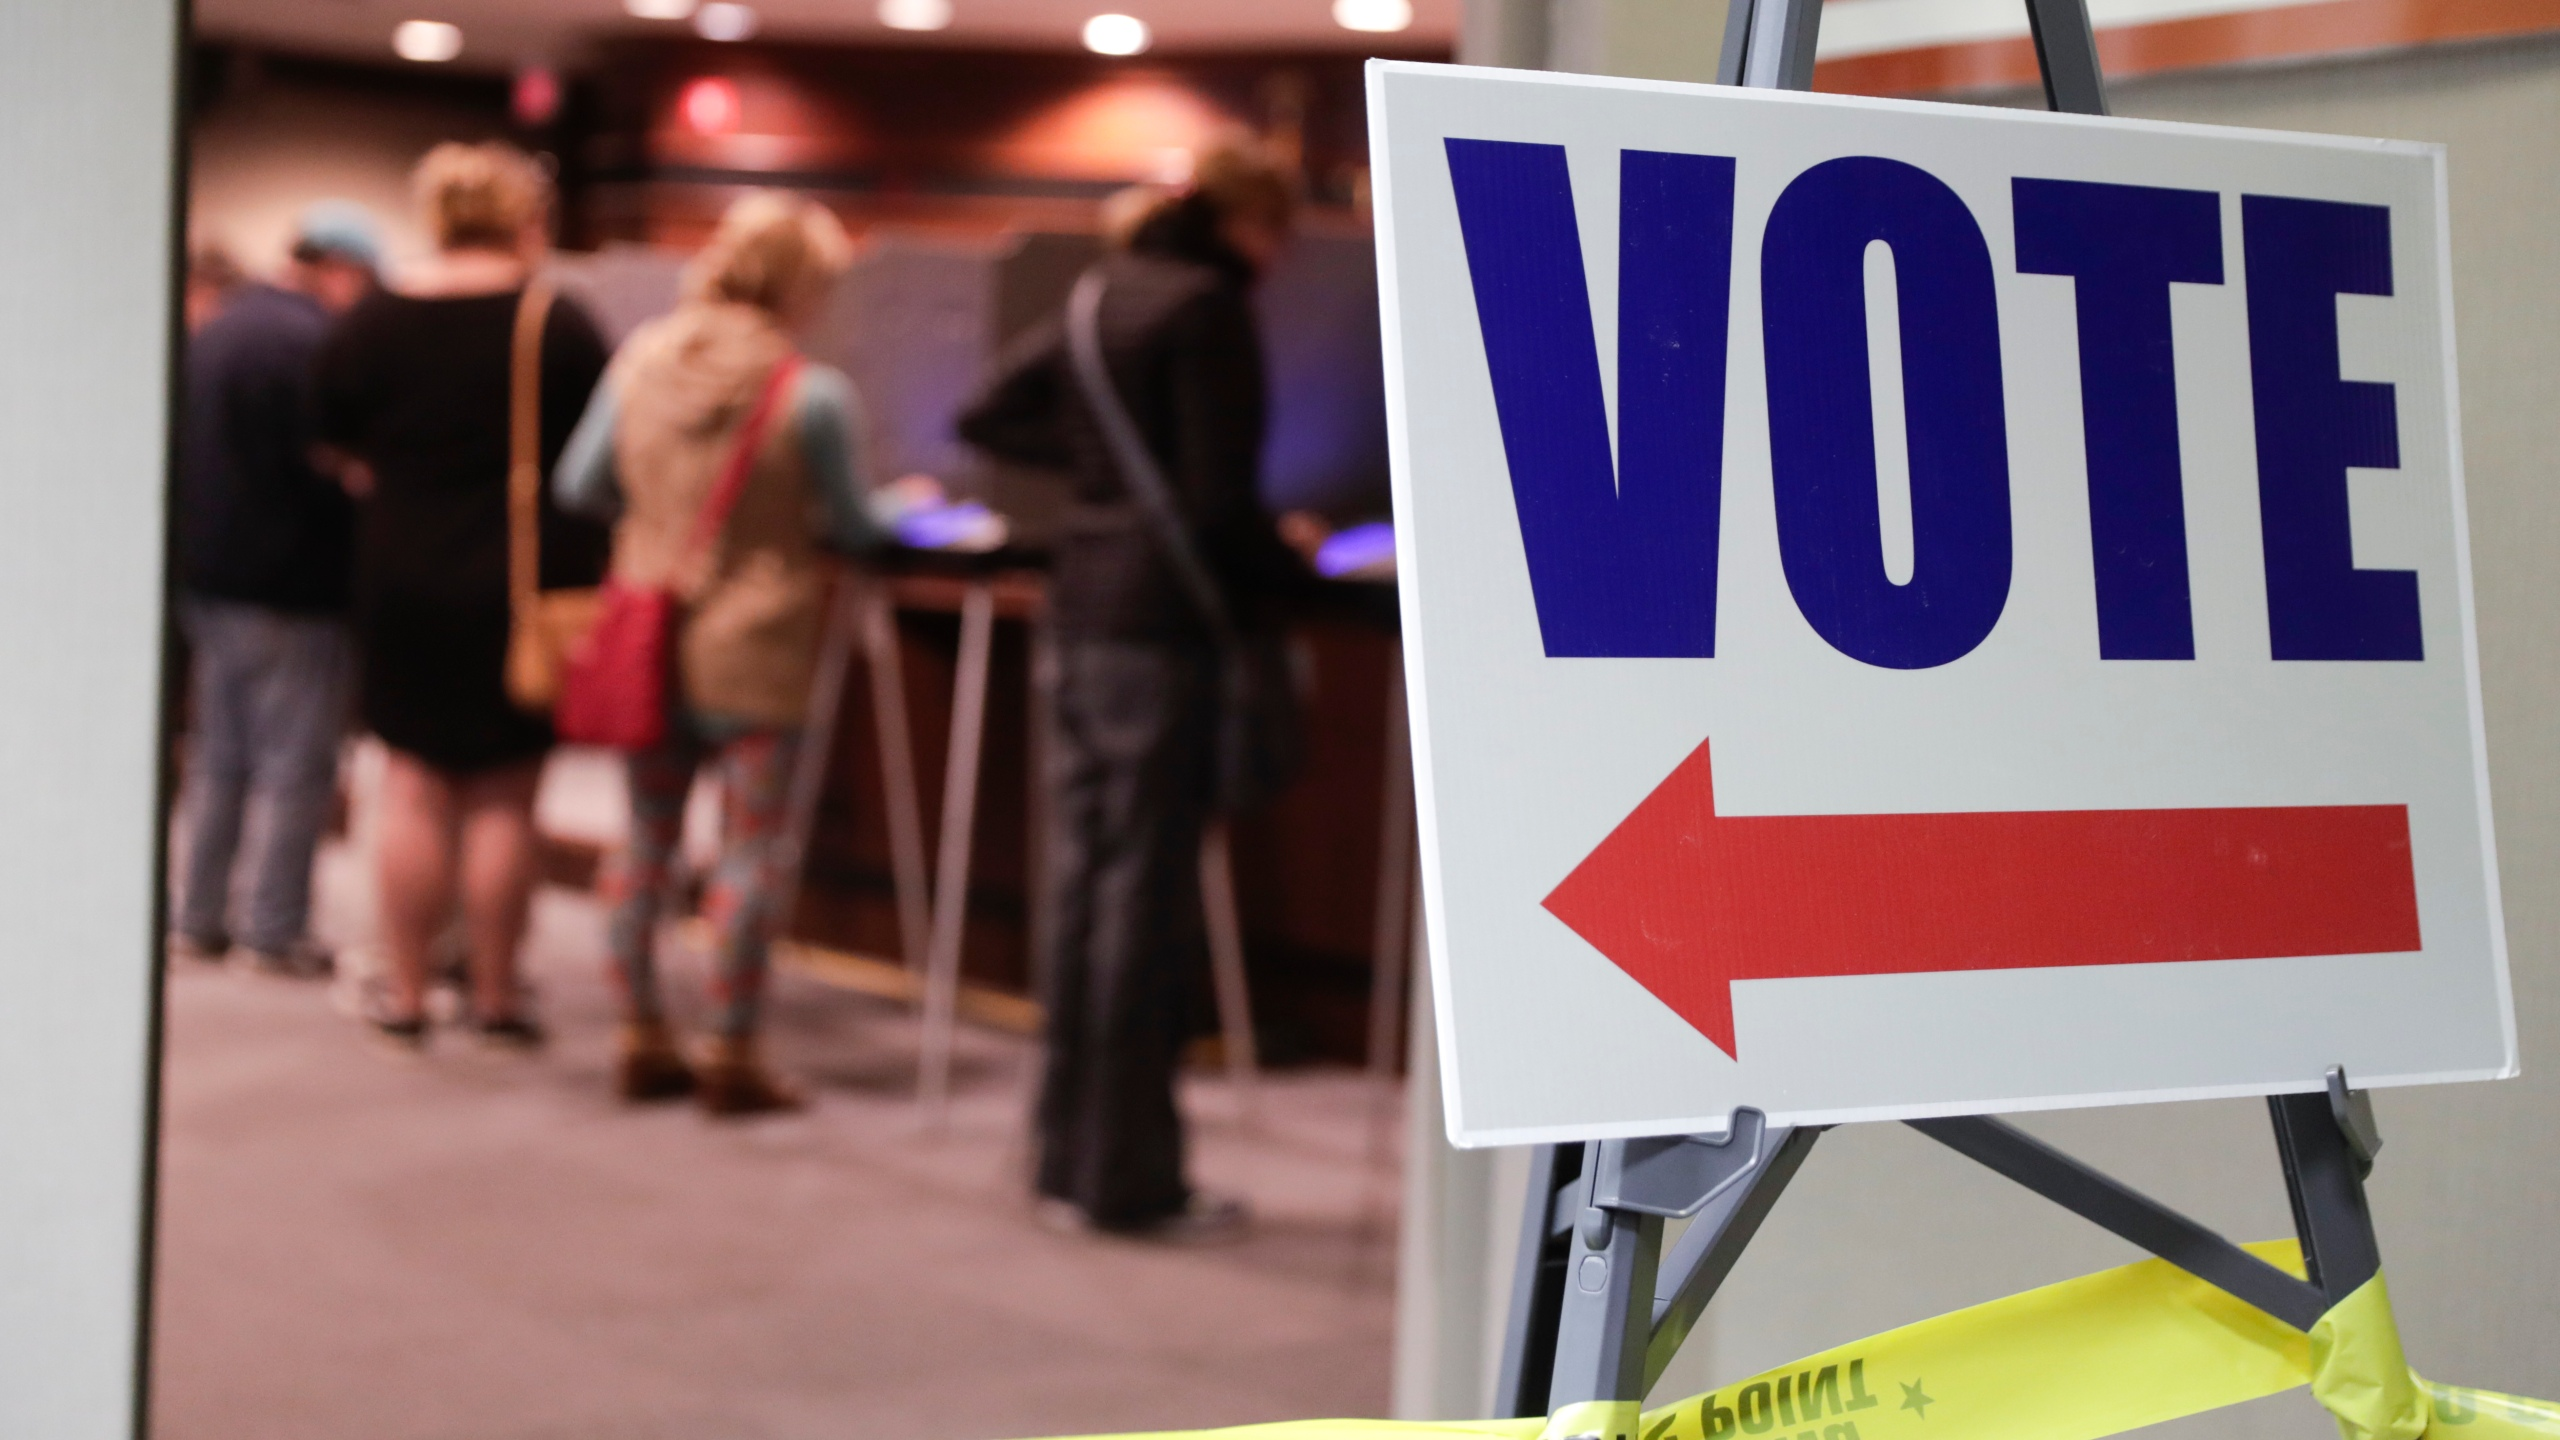 Early_Voting_Indiana_43044-159532.jpg50566473